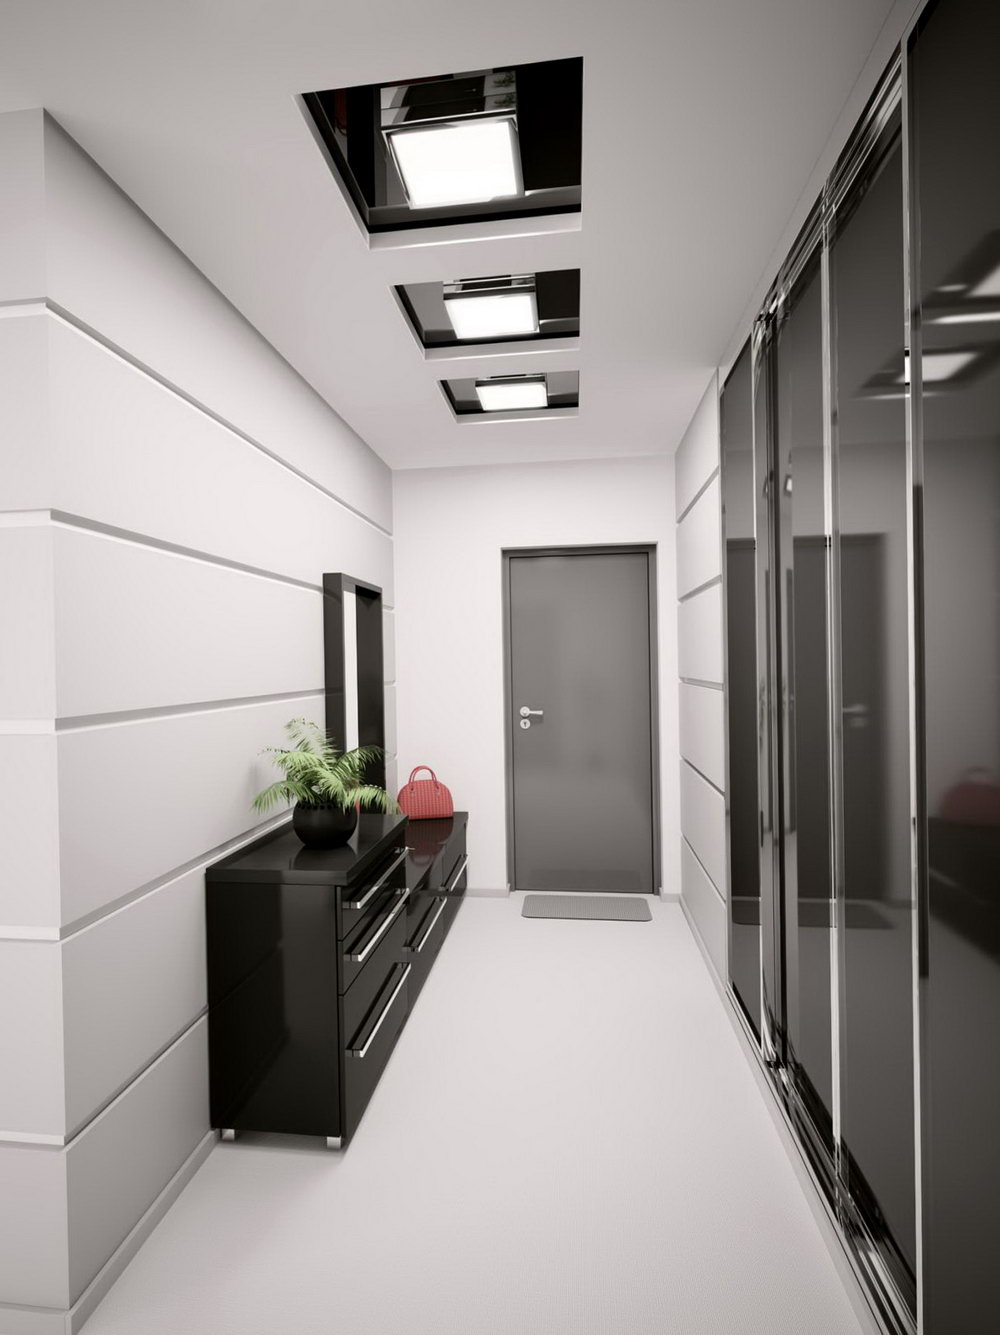 3 Panel Sliding Closet Door